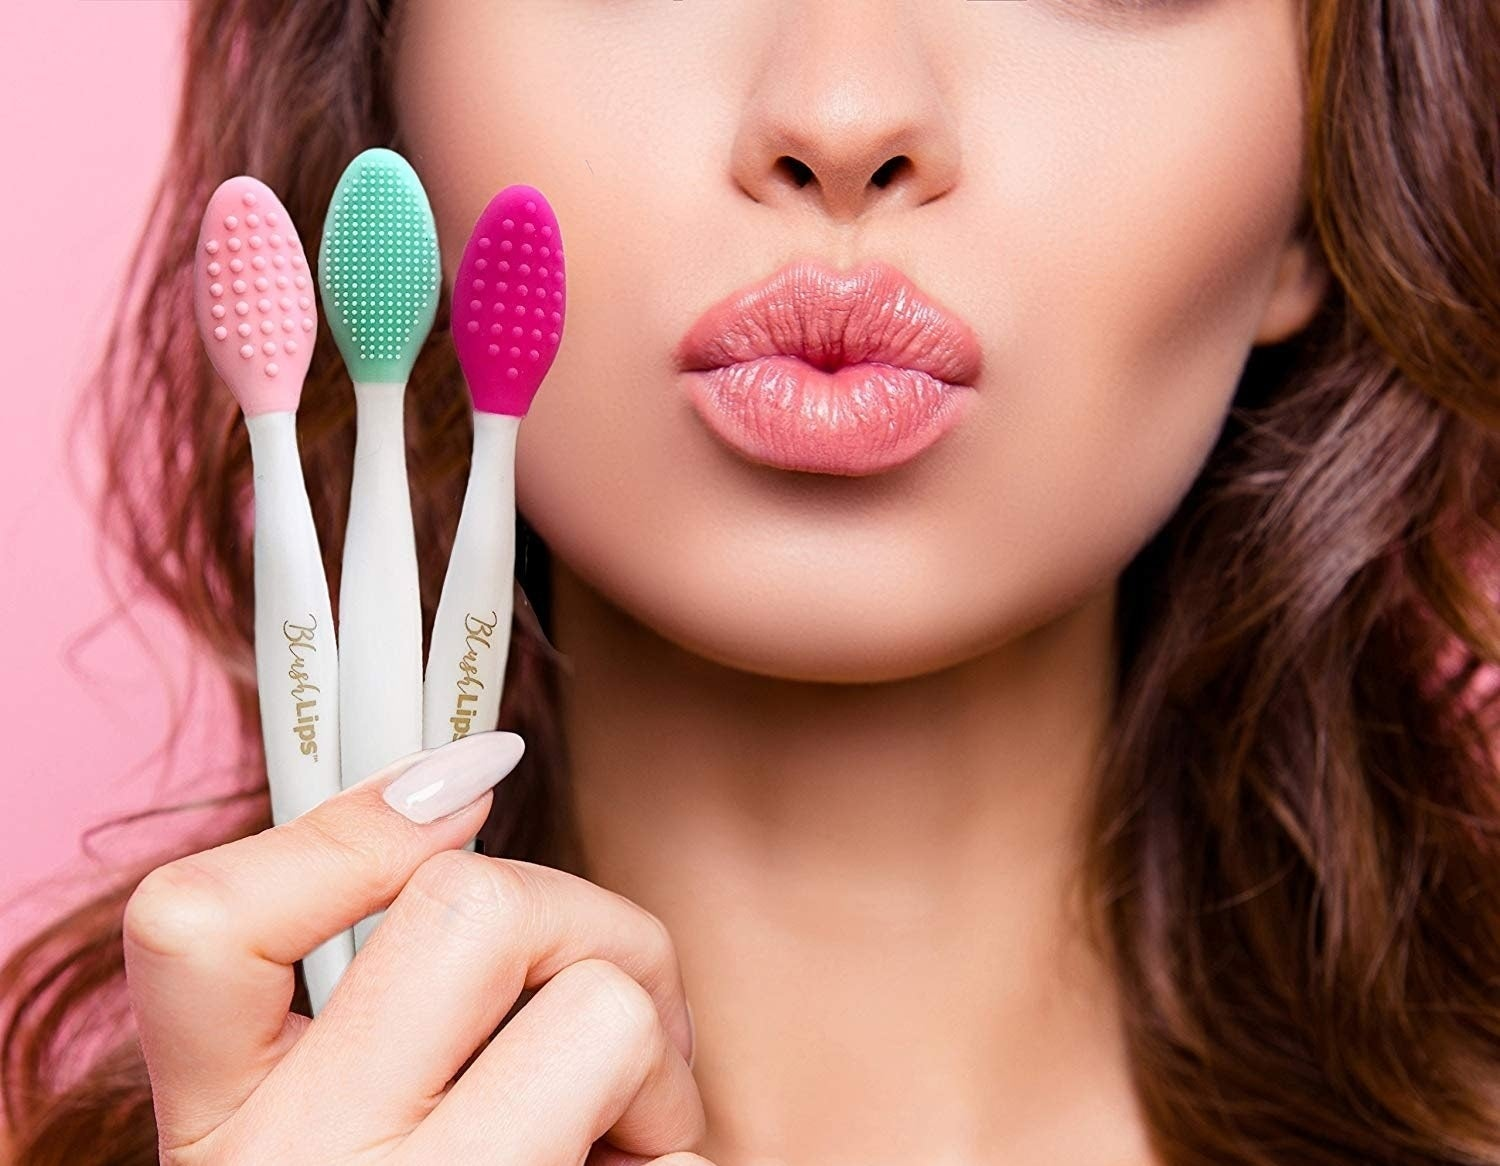 A model holding three scrubber lip brushes